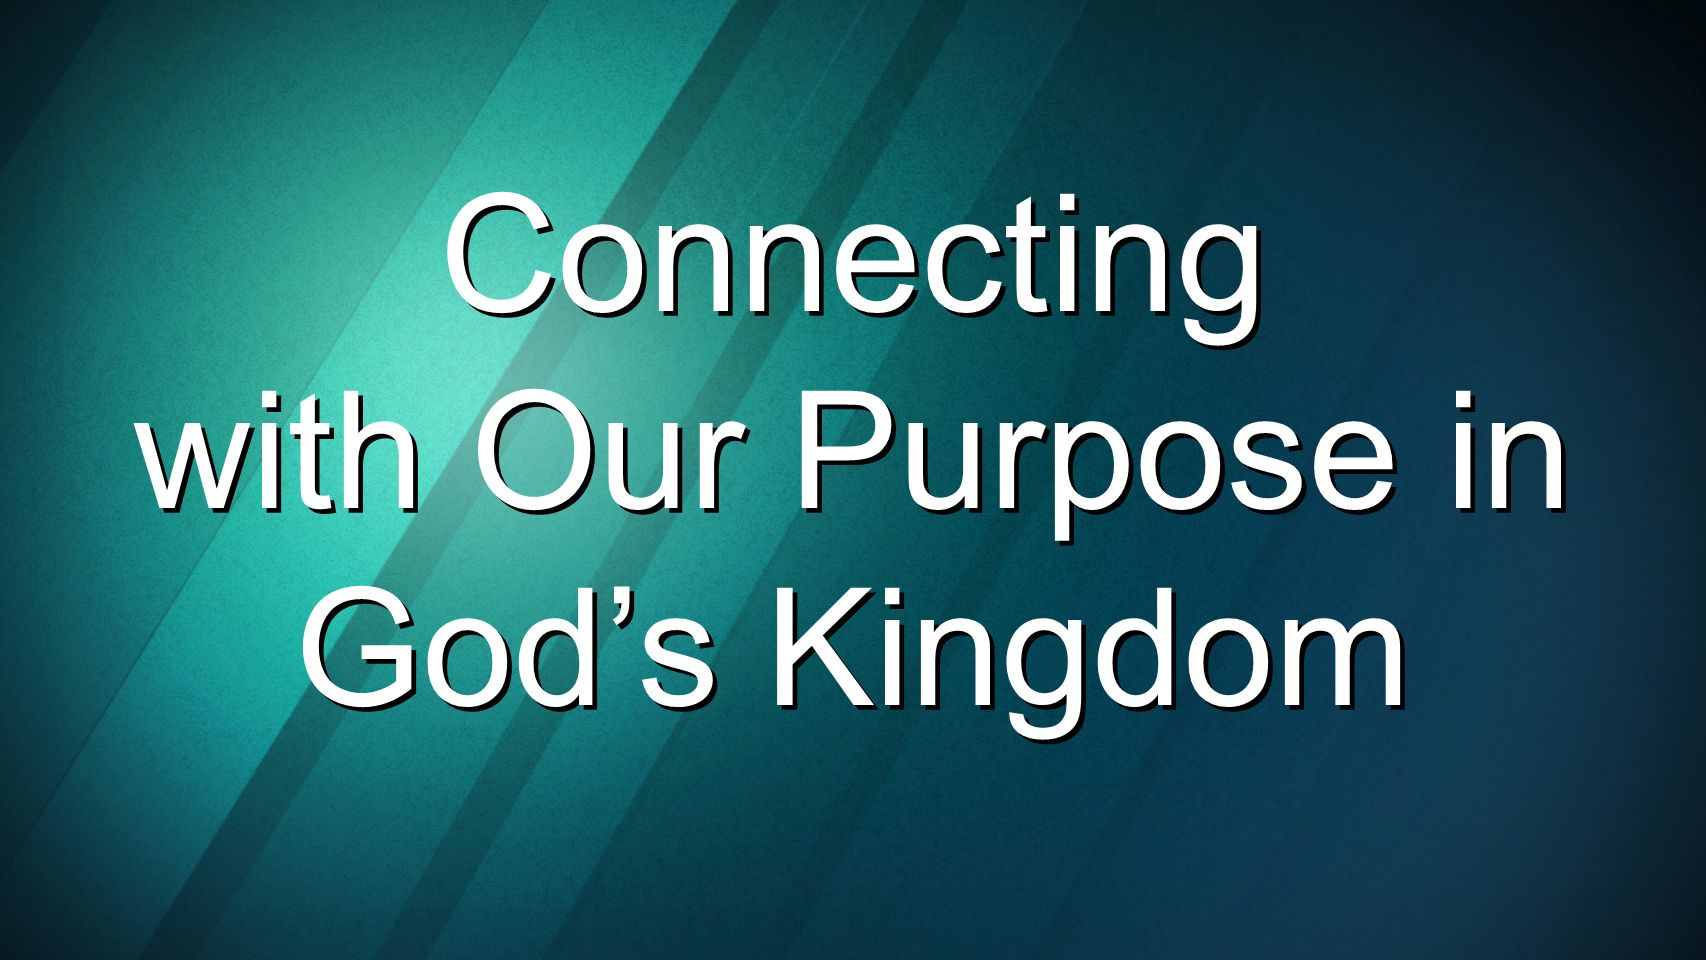 Connecting with Our Purpose in God's Kingdom